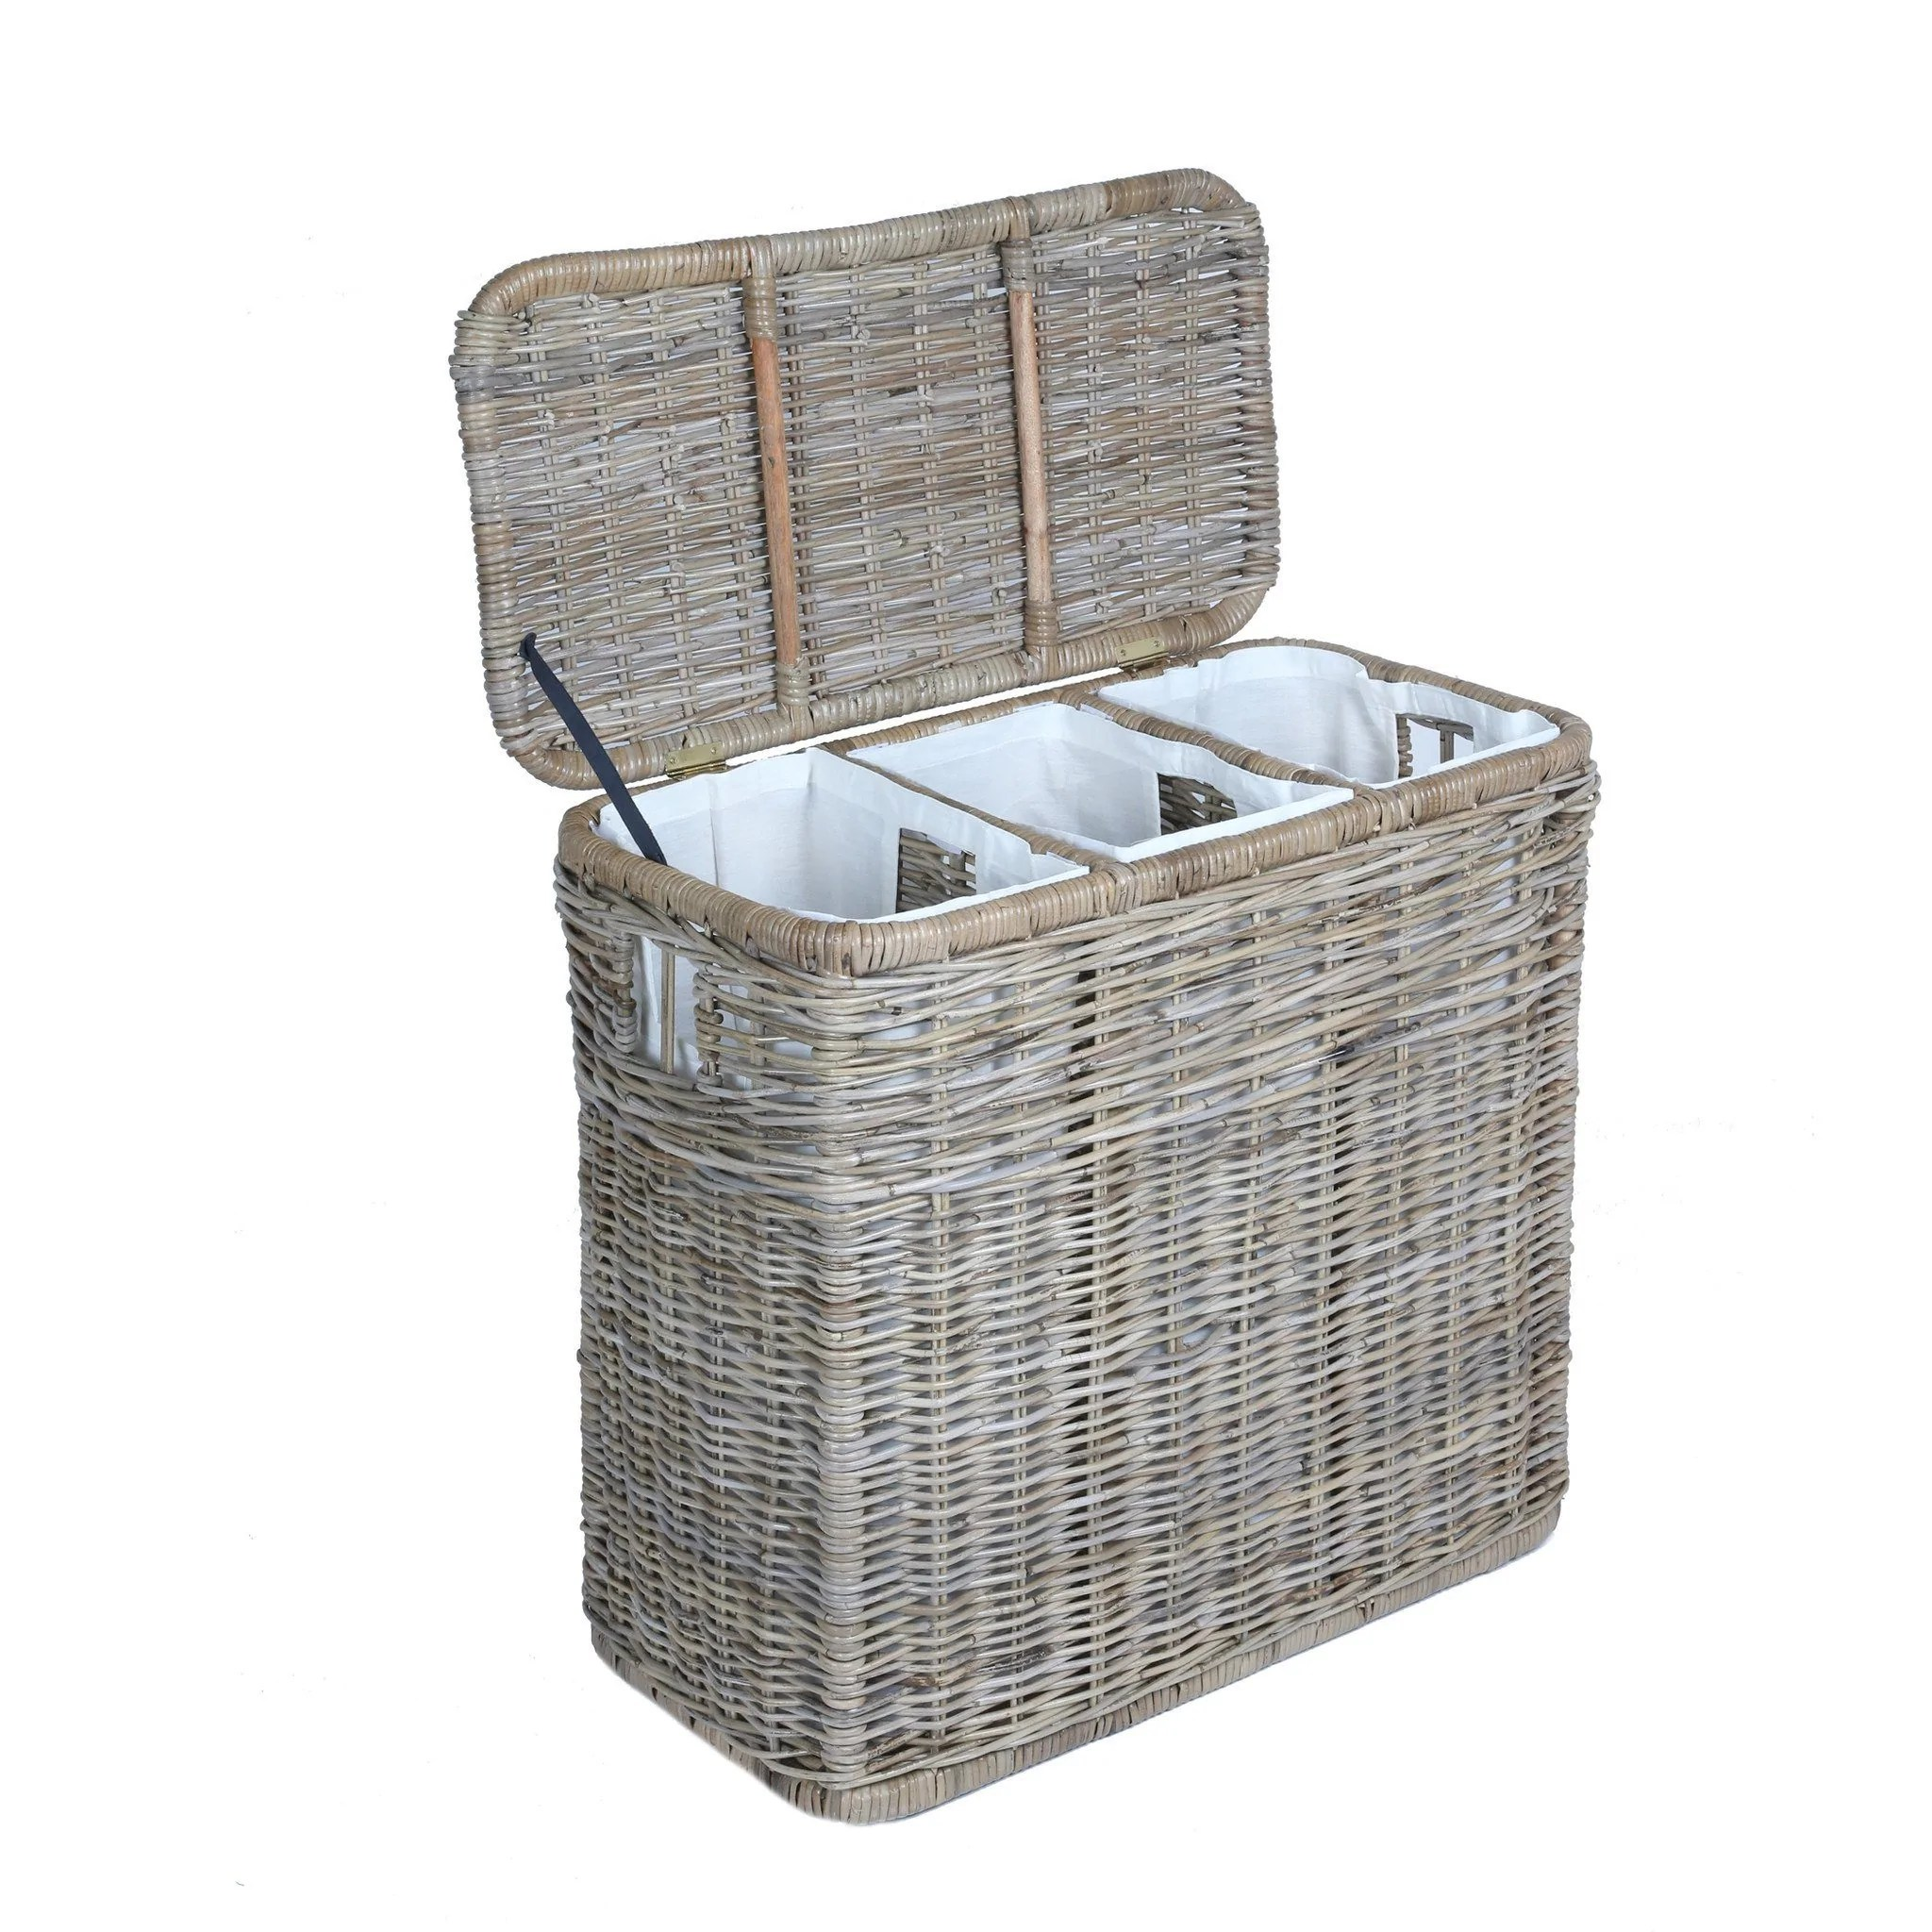 Separate Laundry Basket 3 Compartment Kubu Wicker Laundry Hamper The Basket Lady